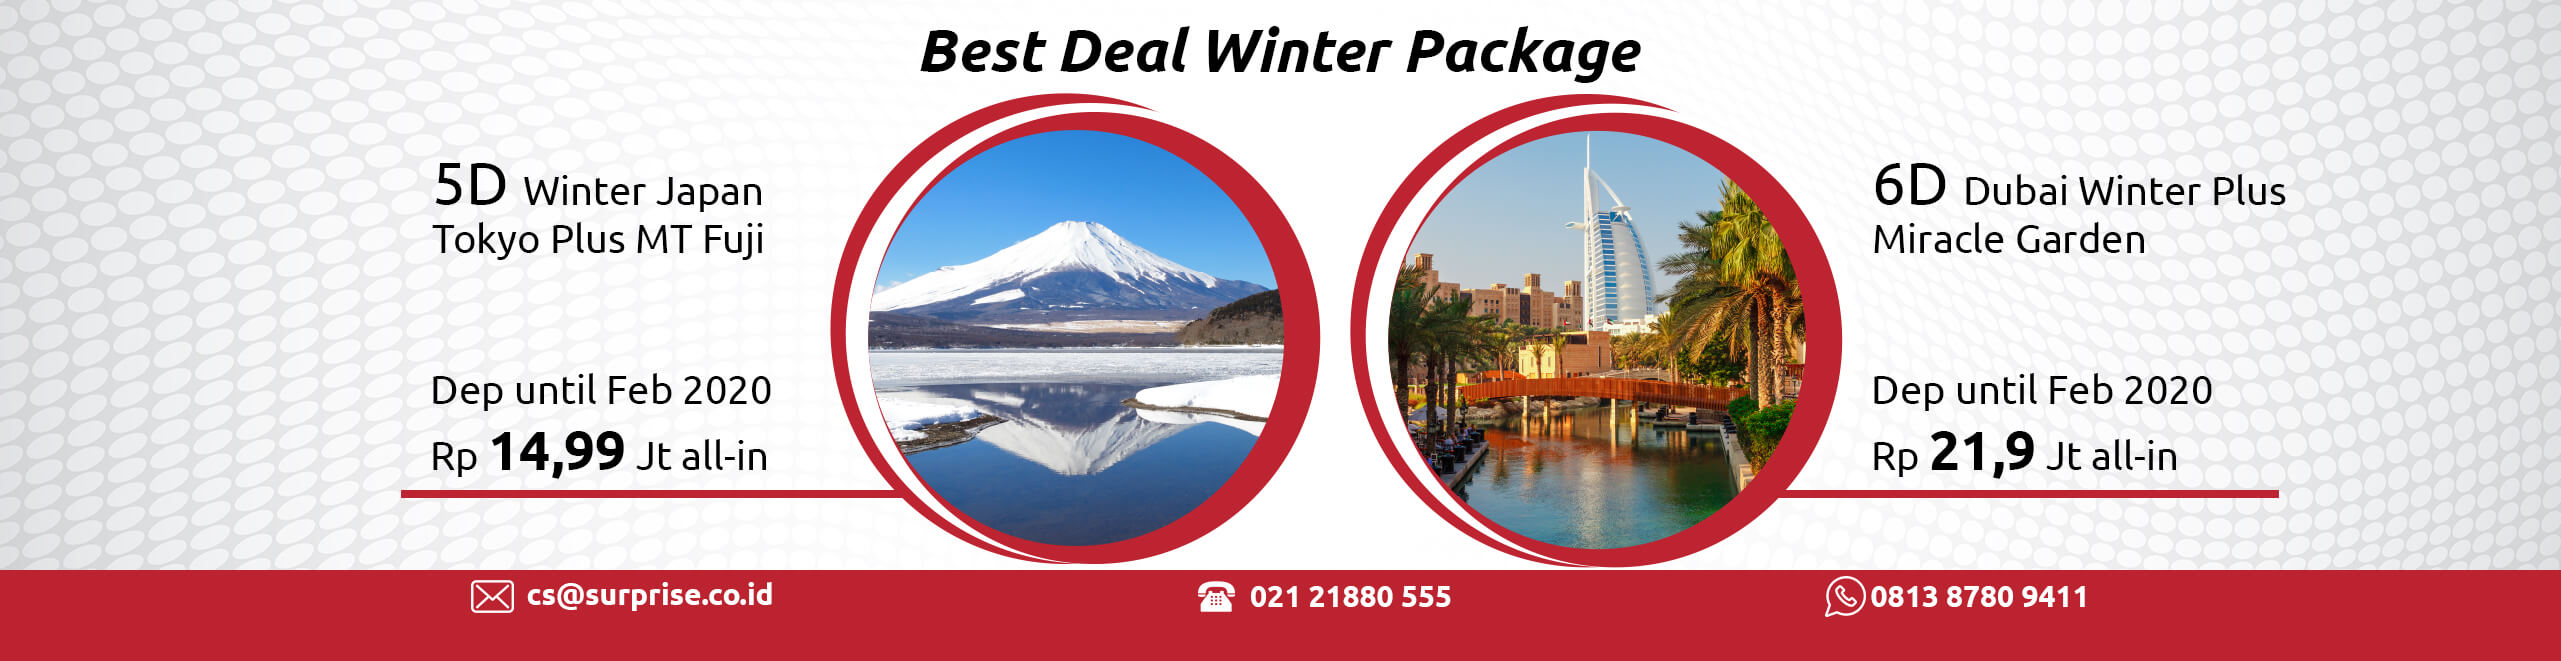 Surprise best deal winter package banner